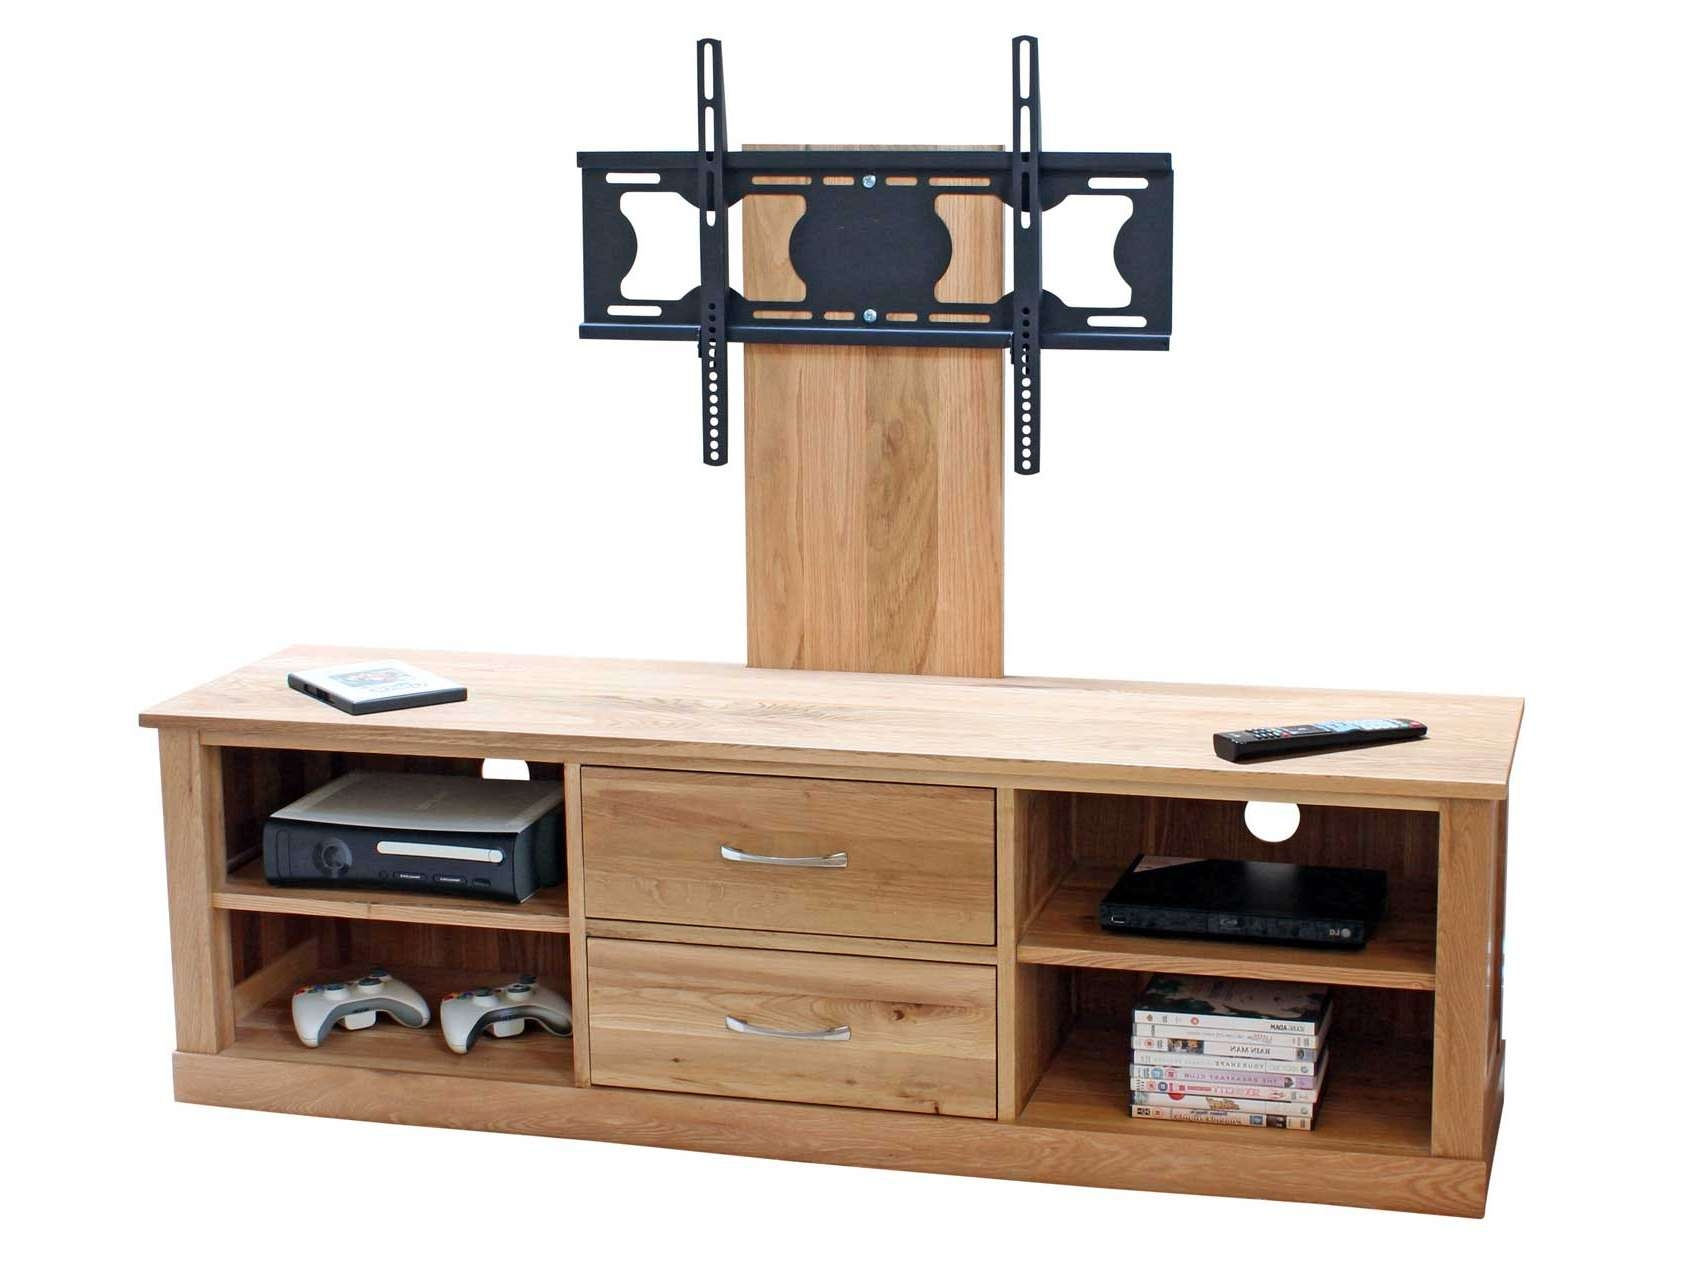 Home Decor: Cool Flat Screen Tv Stands With Mounts Inspiration As With Regard To Tv Stands With Mount (View 7 of 15)